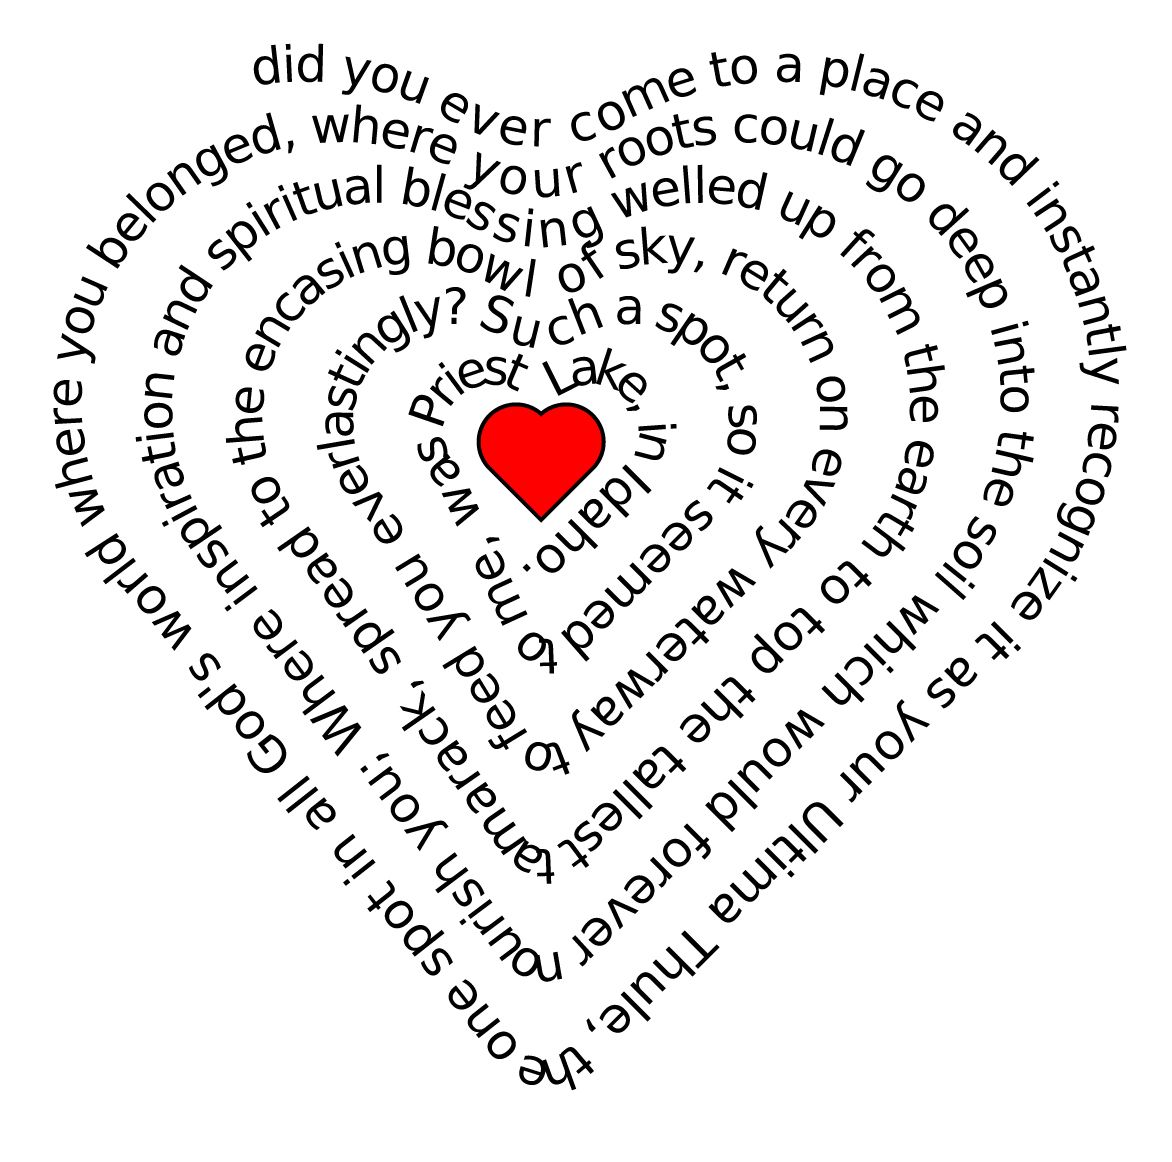 ..did you? I sure did! | Valentines day poems, Valentine